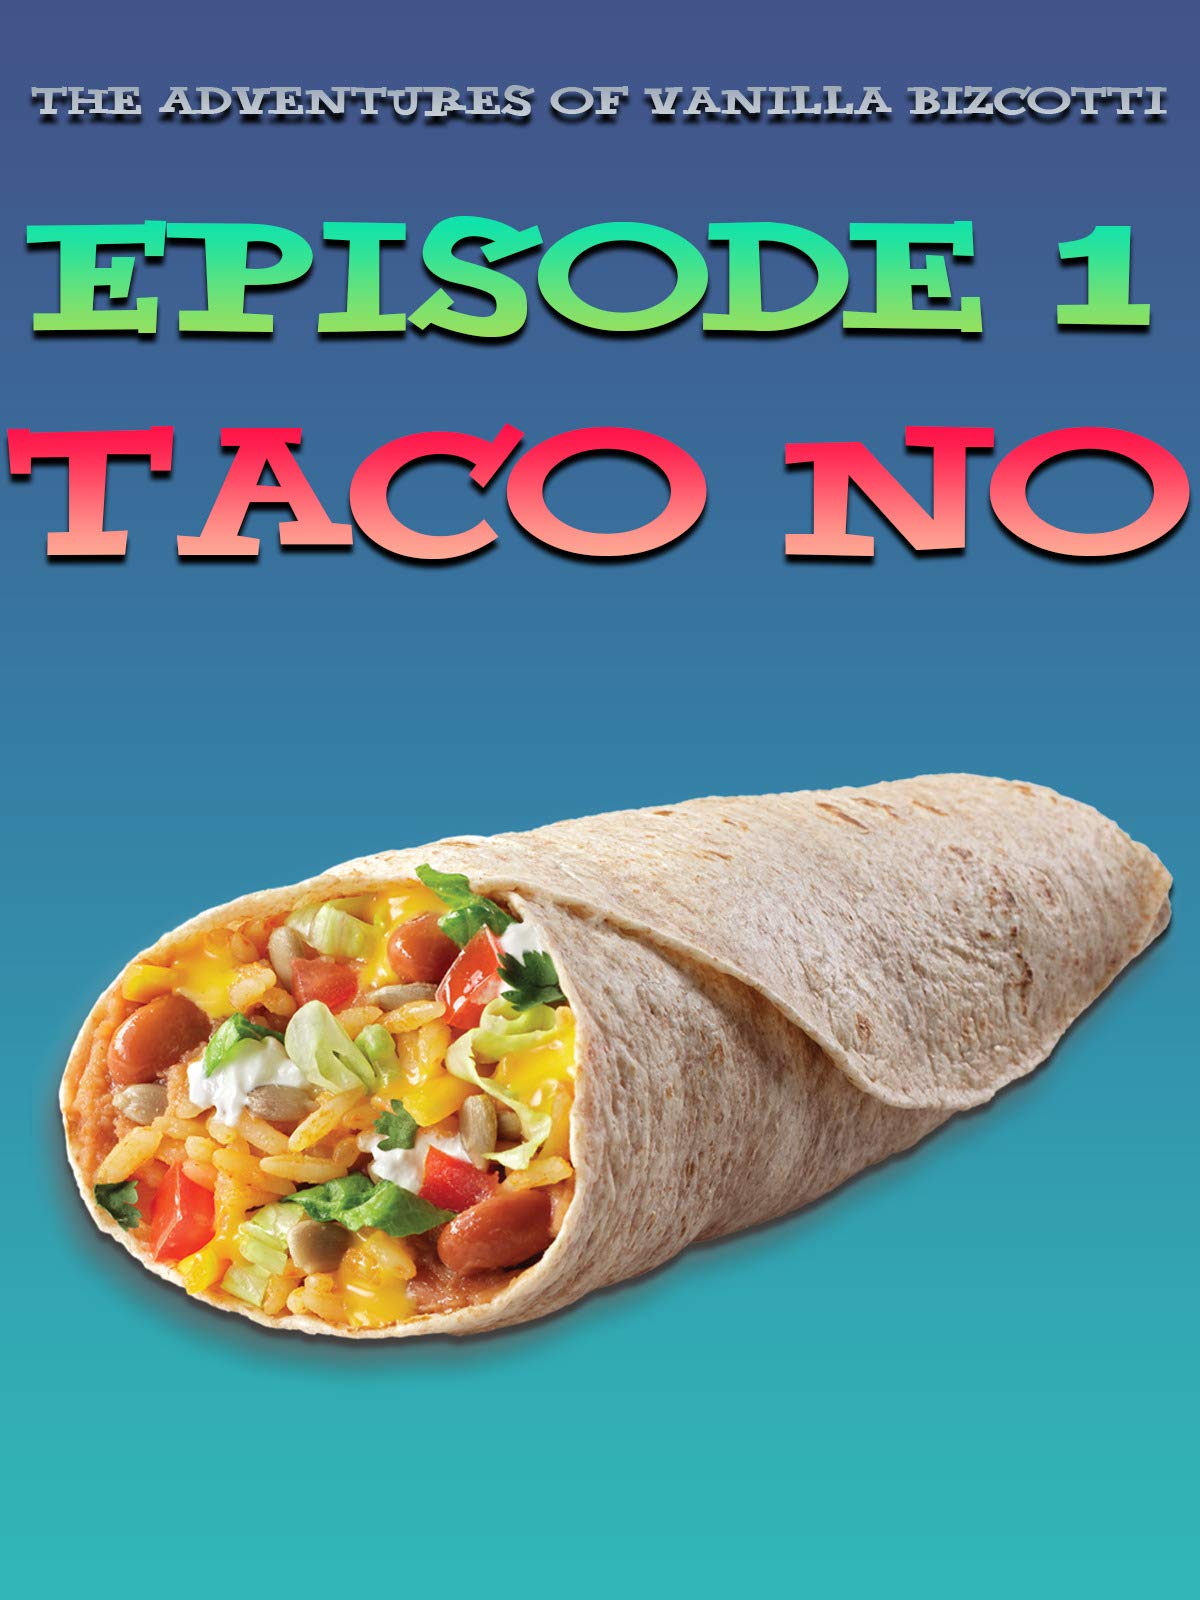 Adventures Of Vanilla Bizcotti - Episode 1. Taco No